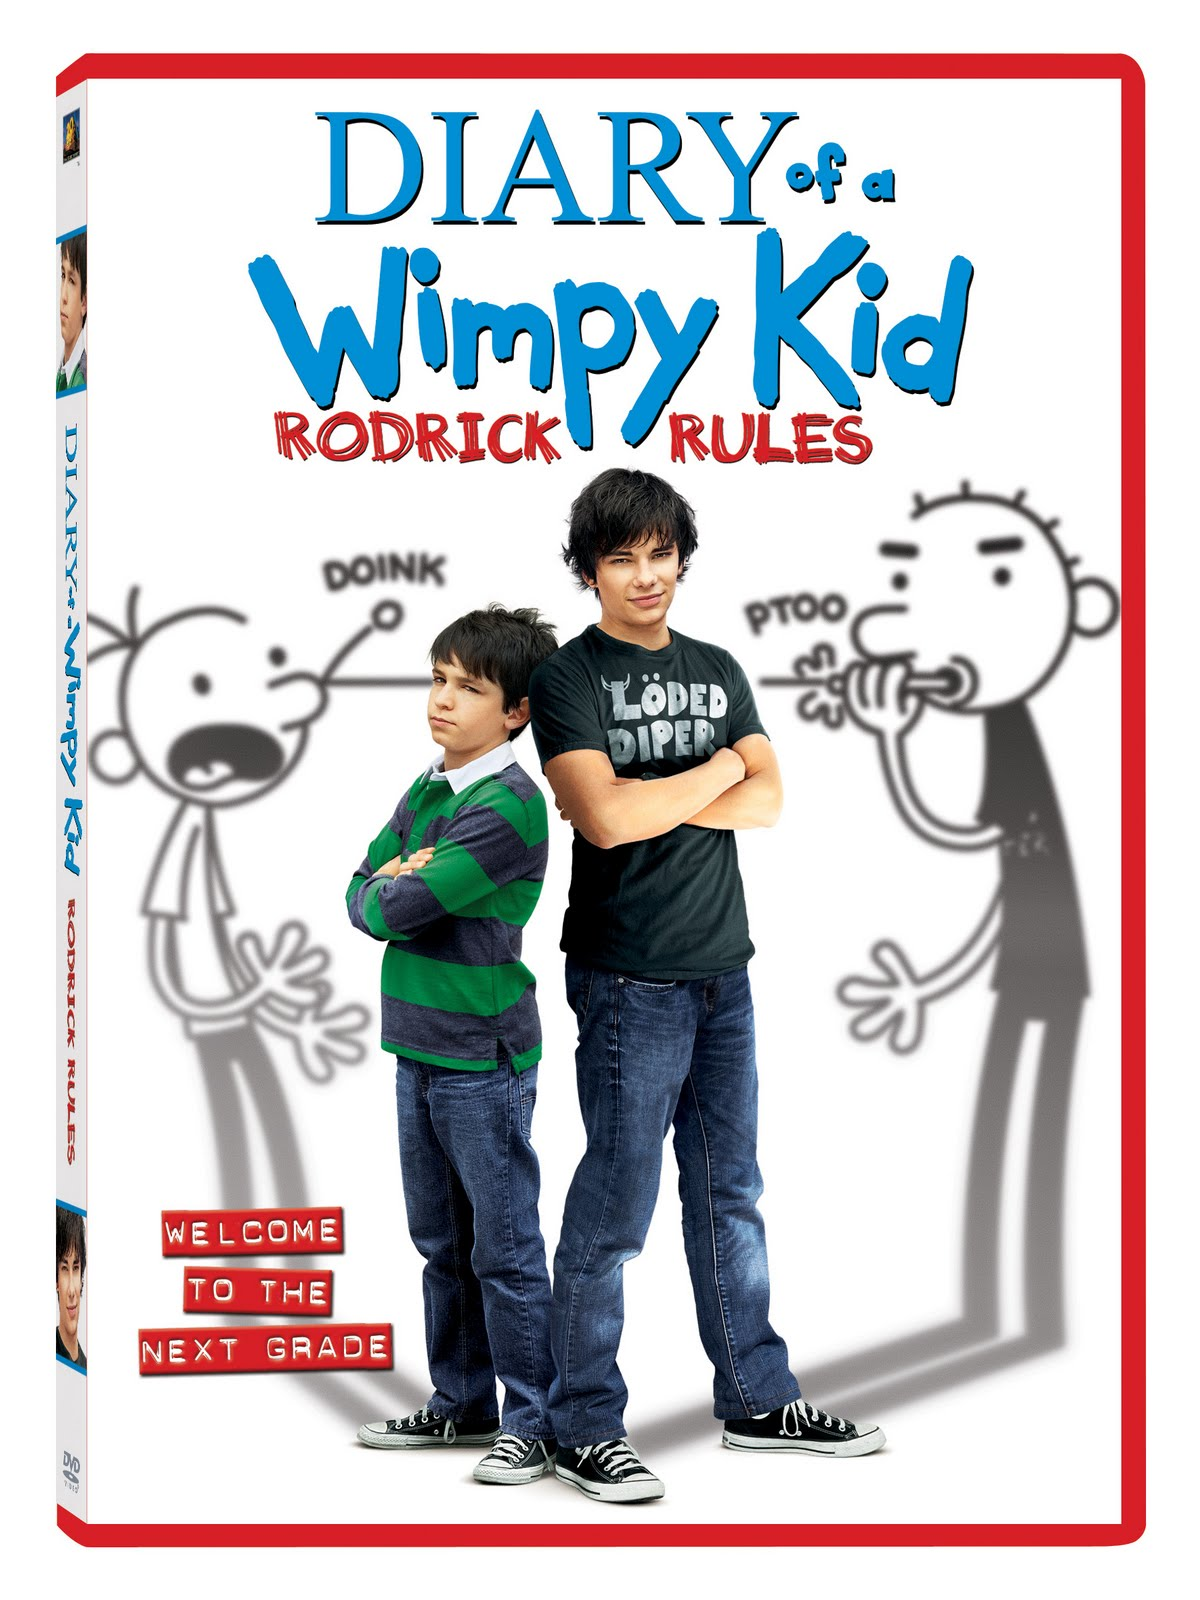 Lille Punkin Diary Of A Wimpy Kid Rodrick Rules Giveaway